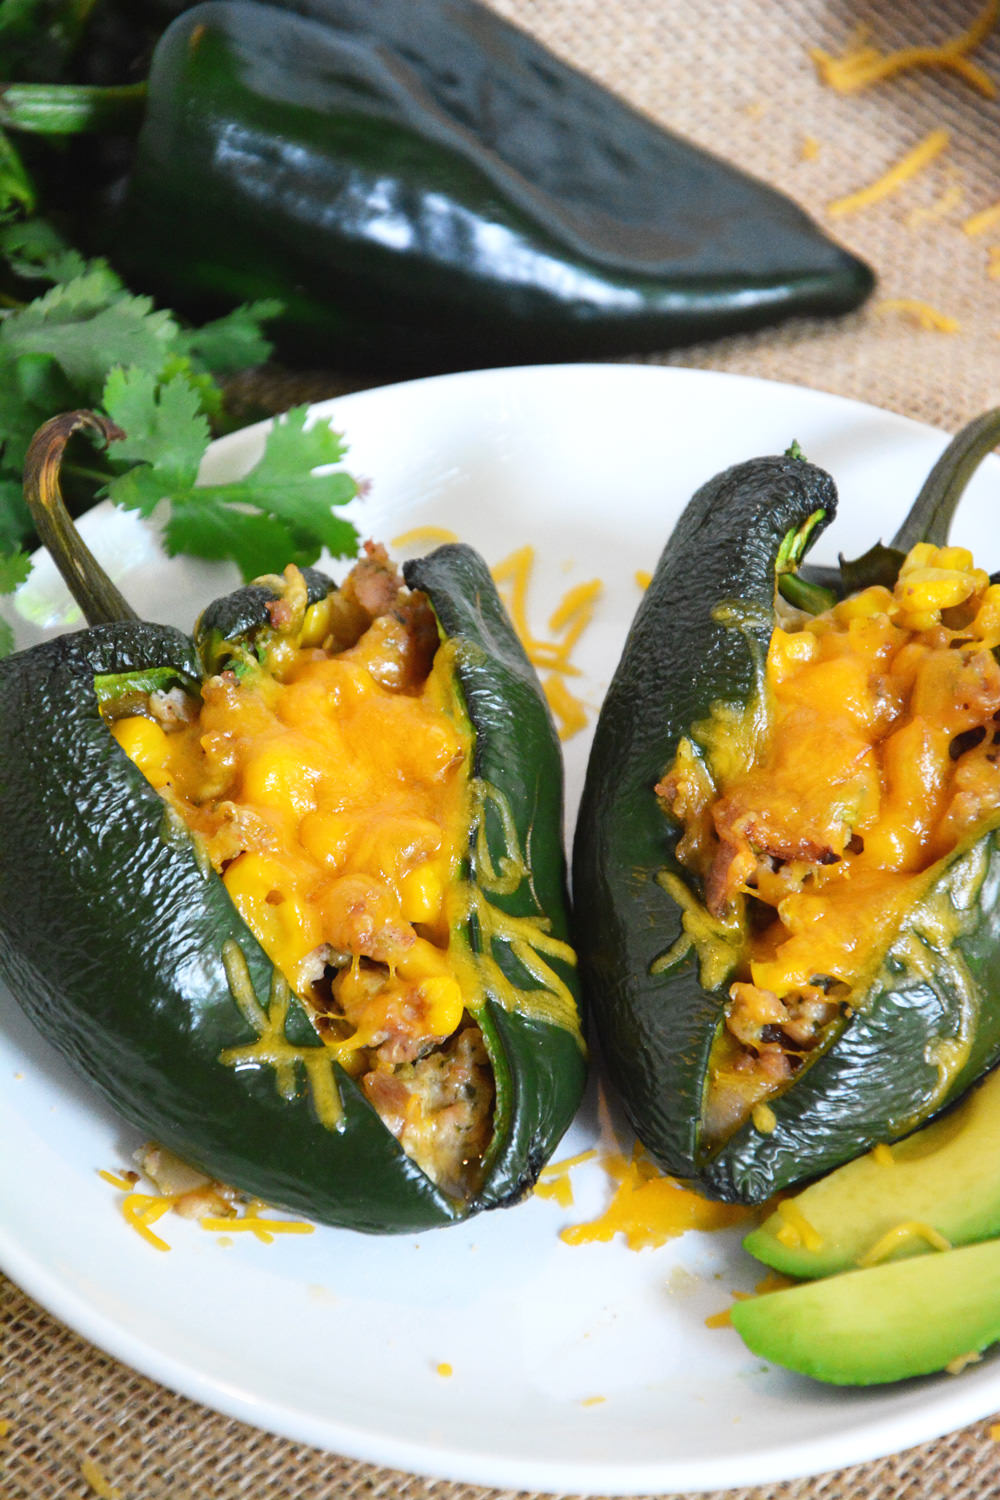 Stuffed poblano peppers loaded with flavorful chicken sausage, green chiles and fresh corn to make one nutrient dense meal!